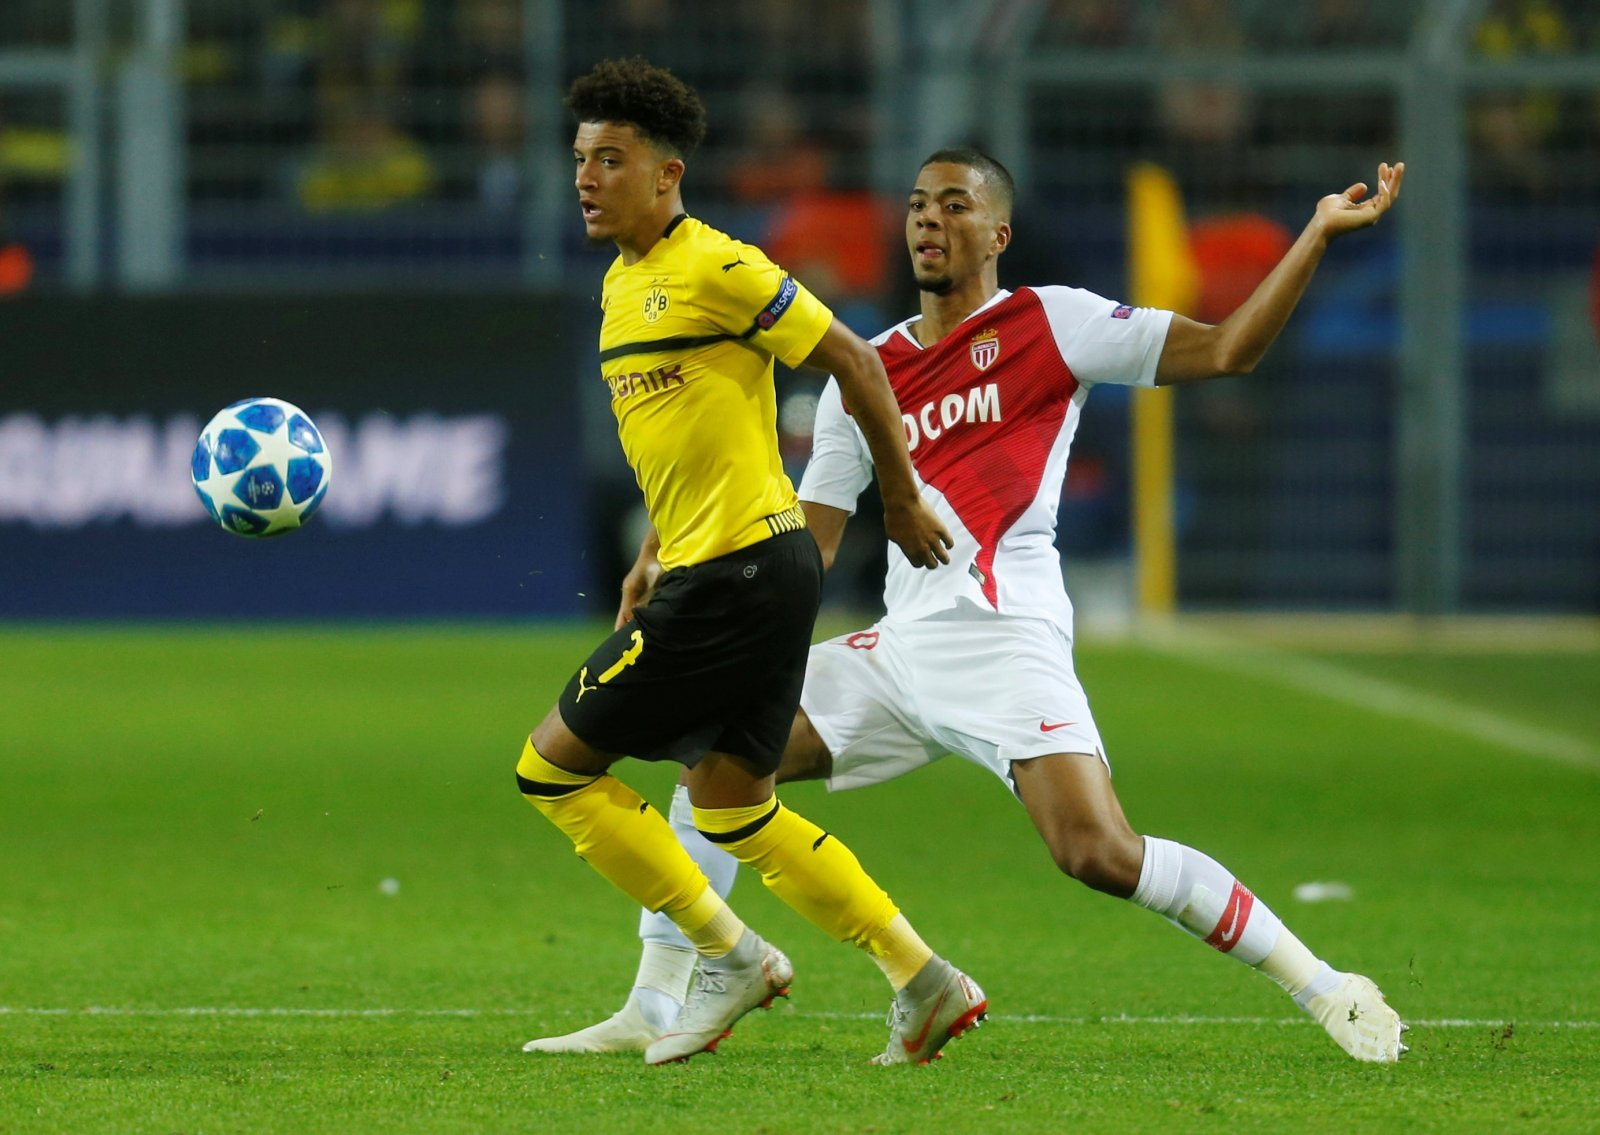 Linking up with Pochettino at Spurs the best chance Sancho has of reaching the top